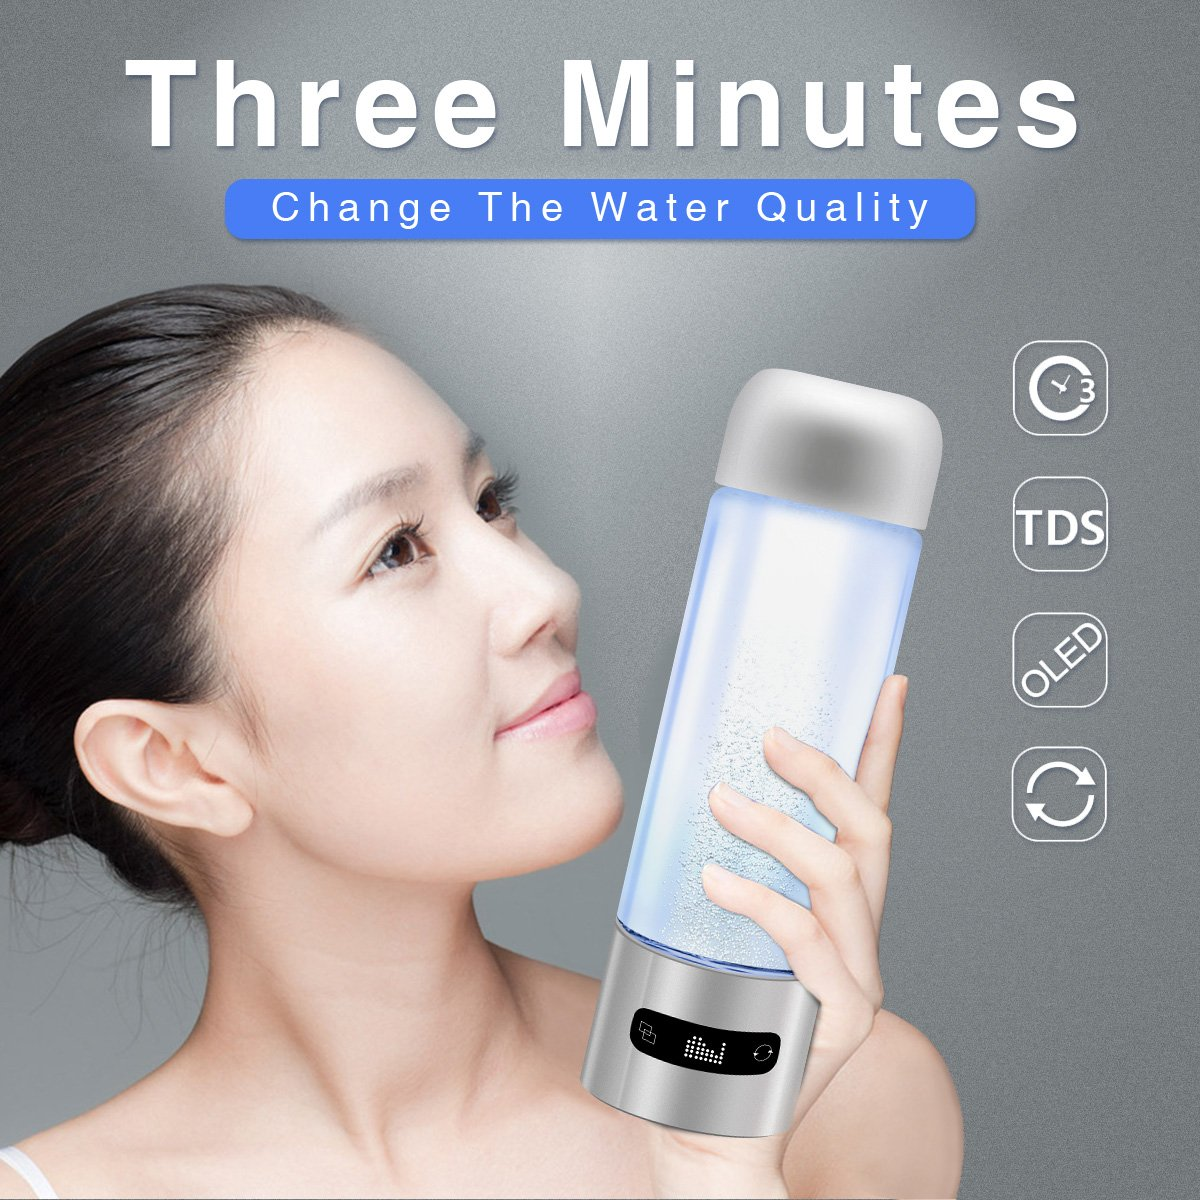 Hydrogen Water Bottle Ionizer Maker Touchscreen Hydrogen-Rich Water Bottle Cup Large Capacity 400ml for Sporting, Travelling Anti-aging MEILYLA by MEILYLA